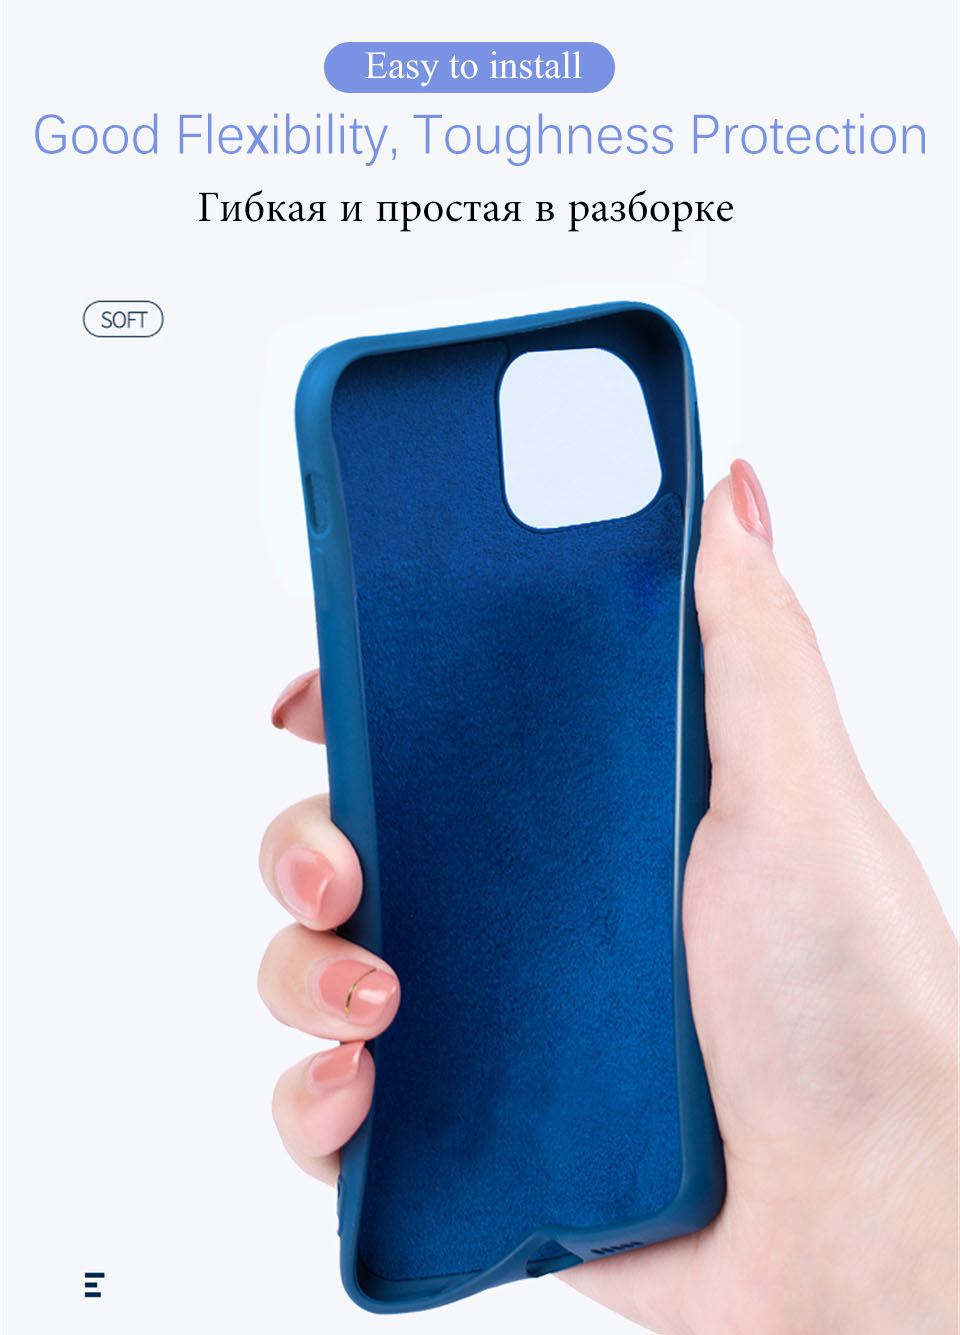 Luxury Liquid Silicone Bumper Phone Case For iPhone 11 Pro X XS Max 12